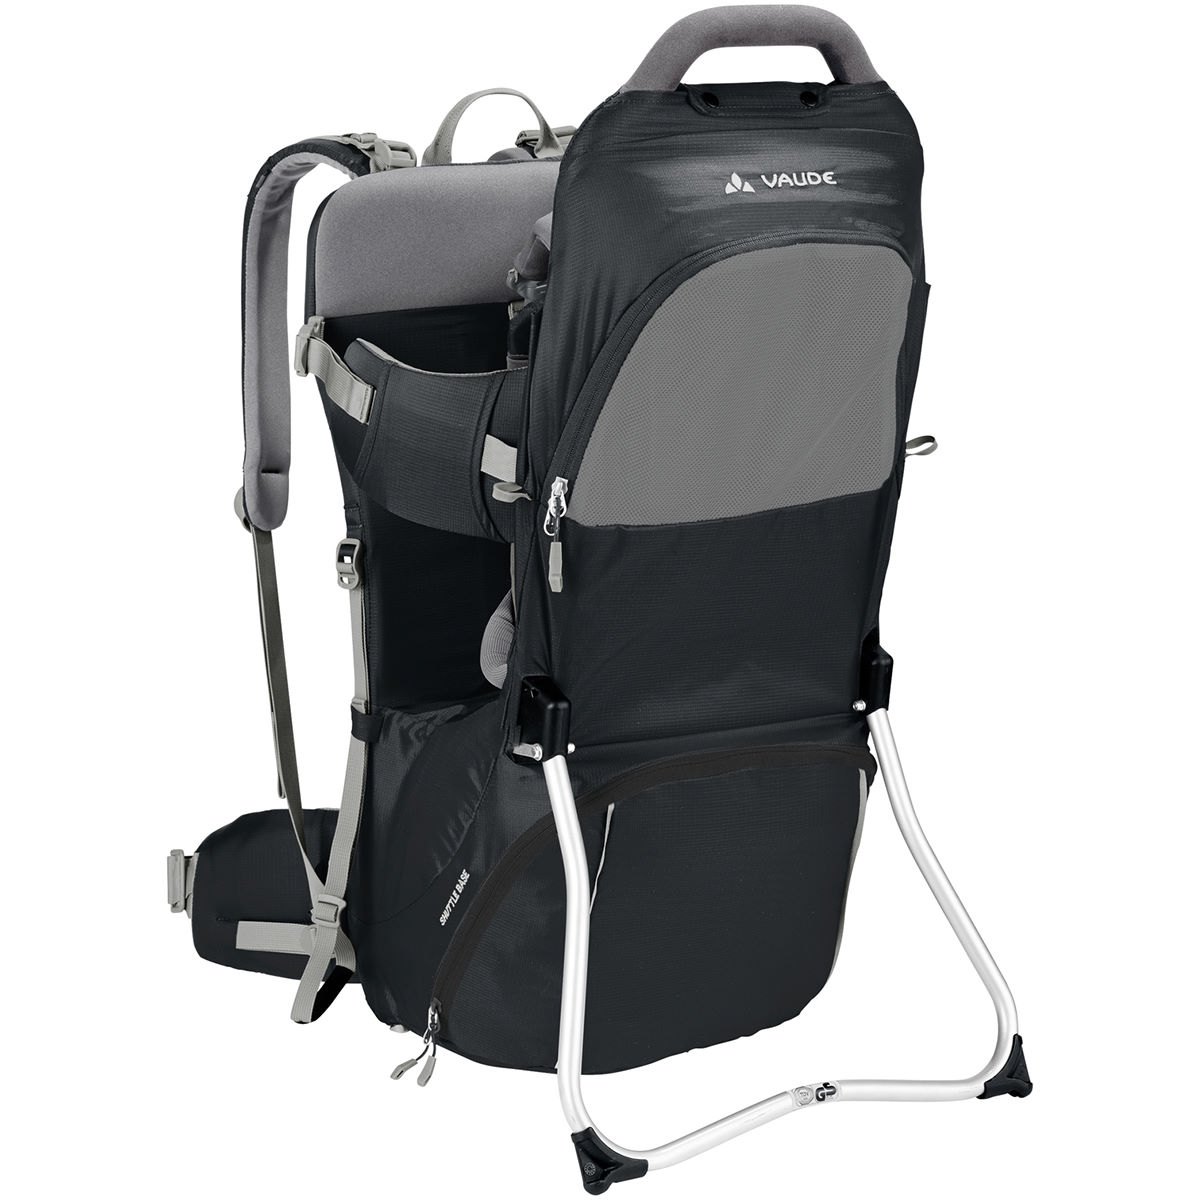 Vaude Shuttle Base Child Carrier – One Size Black | Child Carriers